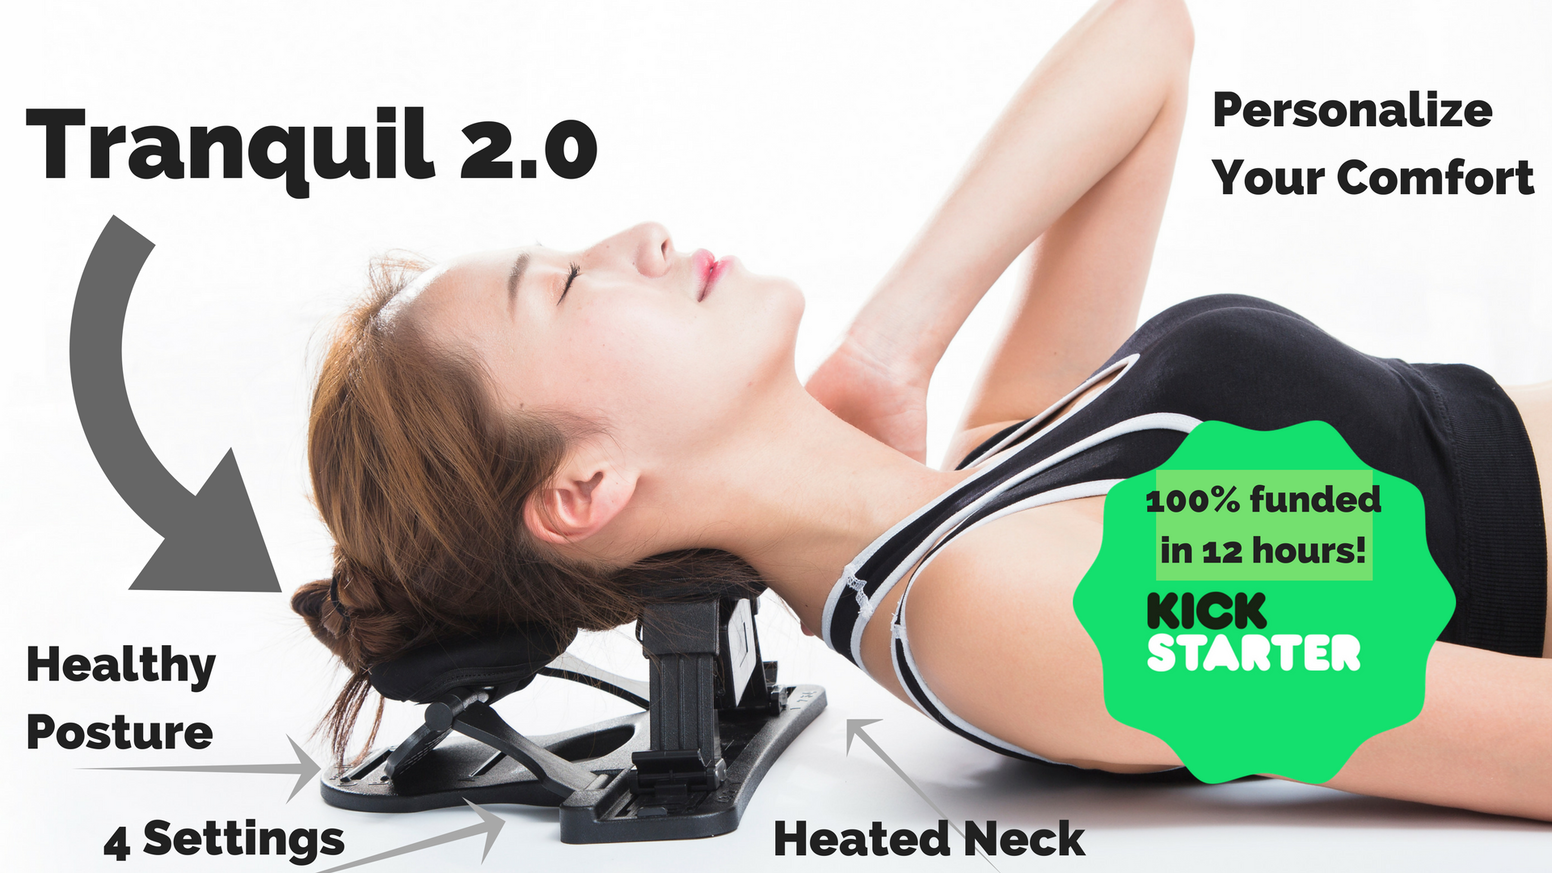 Stop ignoring daily stress! Get comfort & ideal alignment - Tranquil 2.0 supports your posture by decompressing your neck.